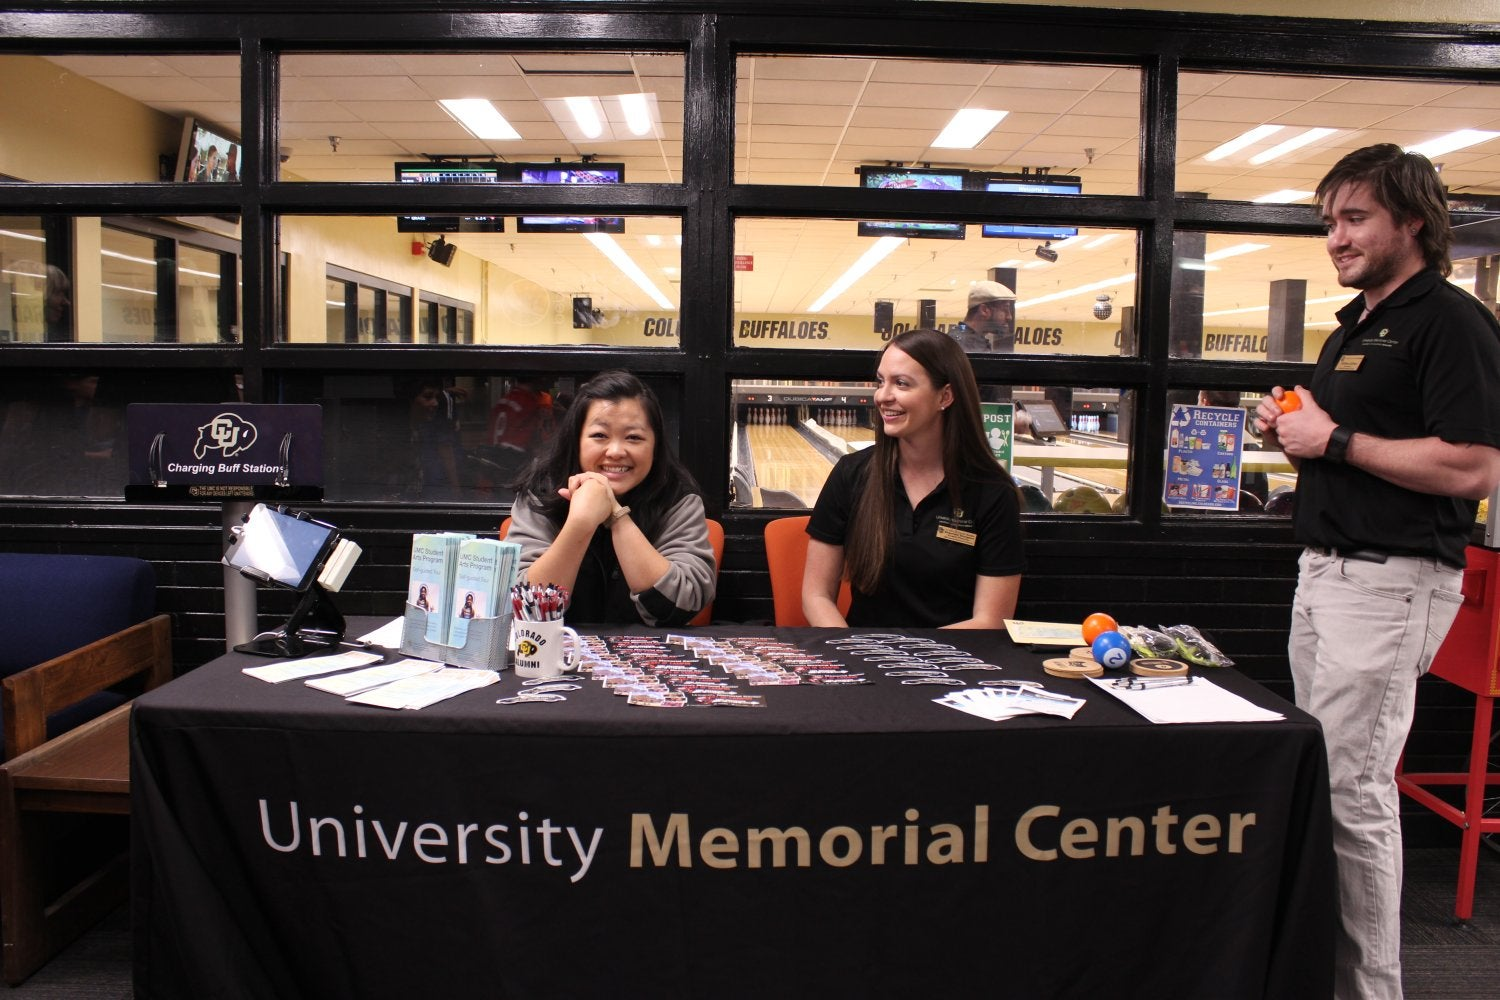 UMC staff greet guests from the Welcome Table